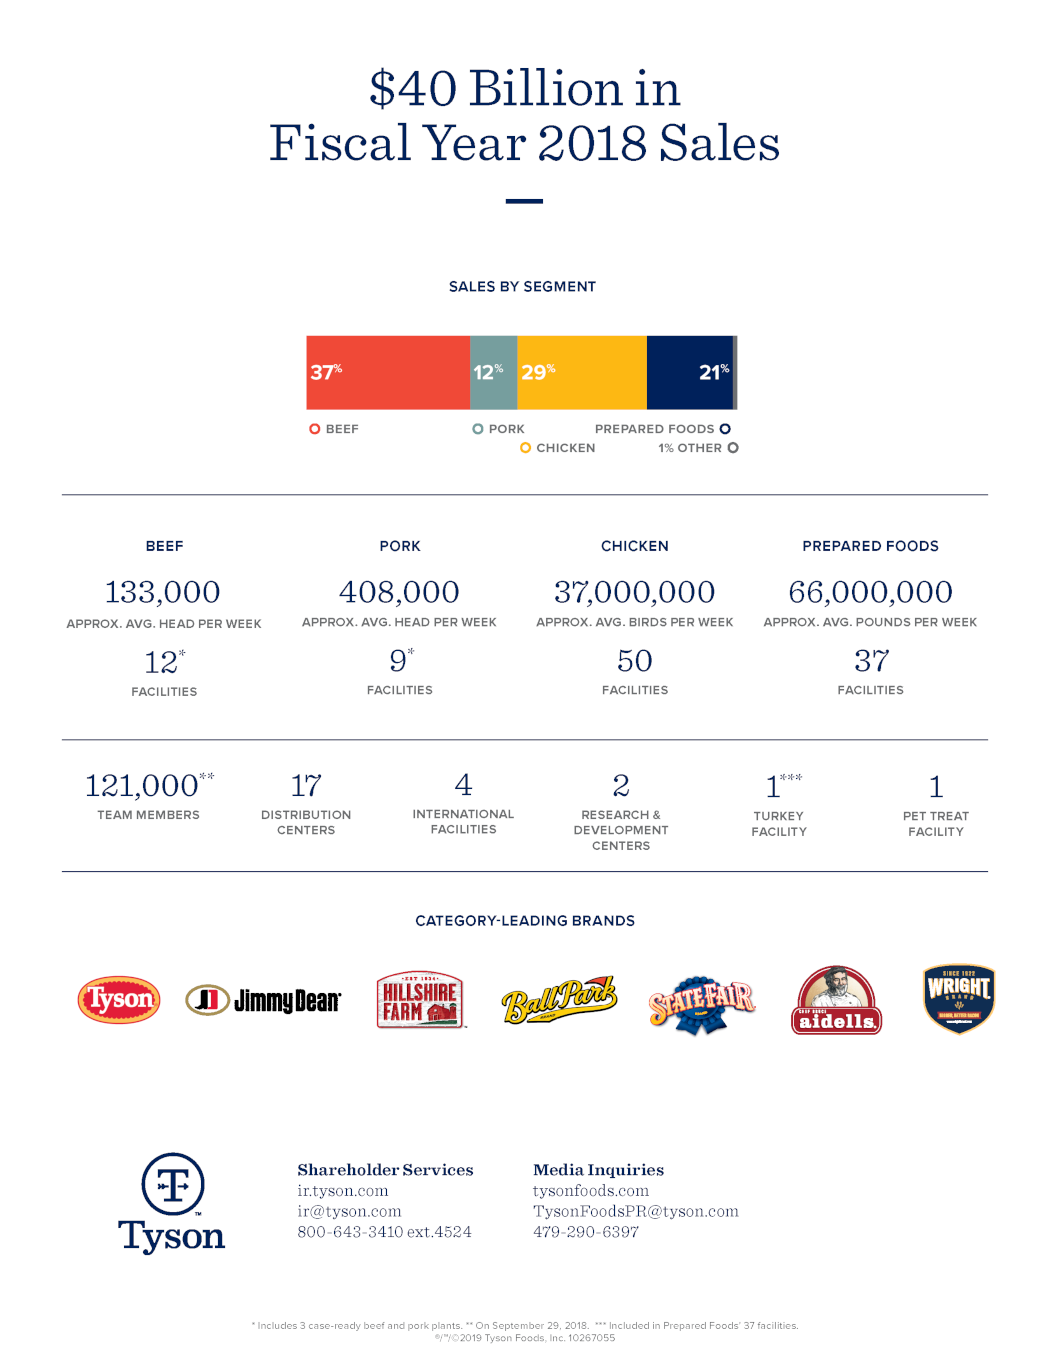 Tyson Foods Sales Fact Sheet Fiscal Year 2018